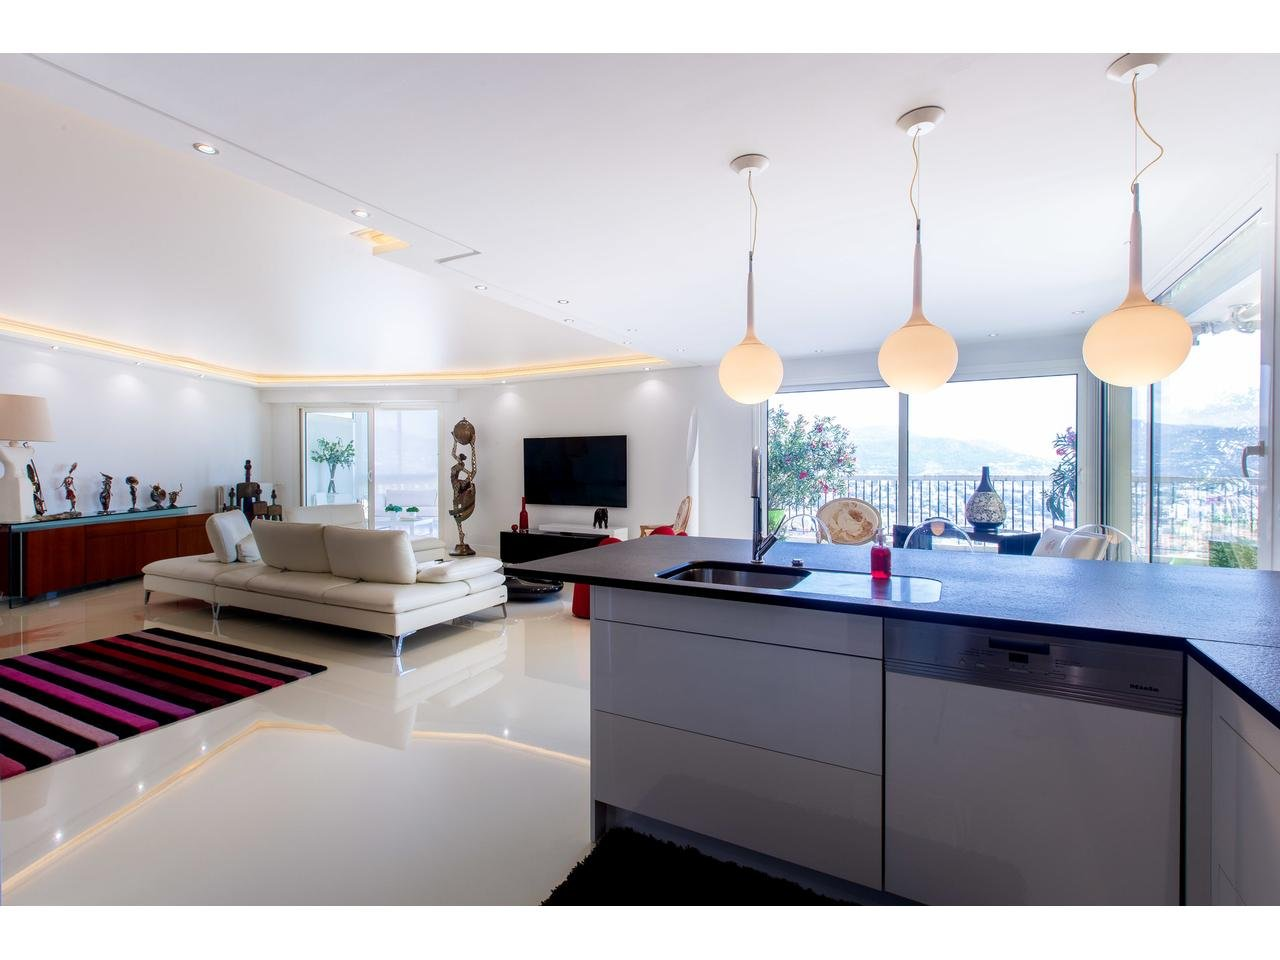 Appartement  4 Rooms 136m2  for sale  1295000 €